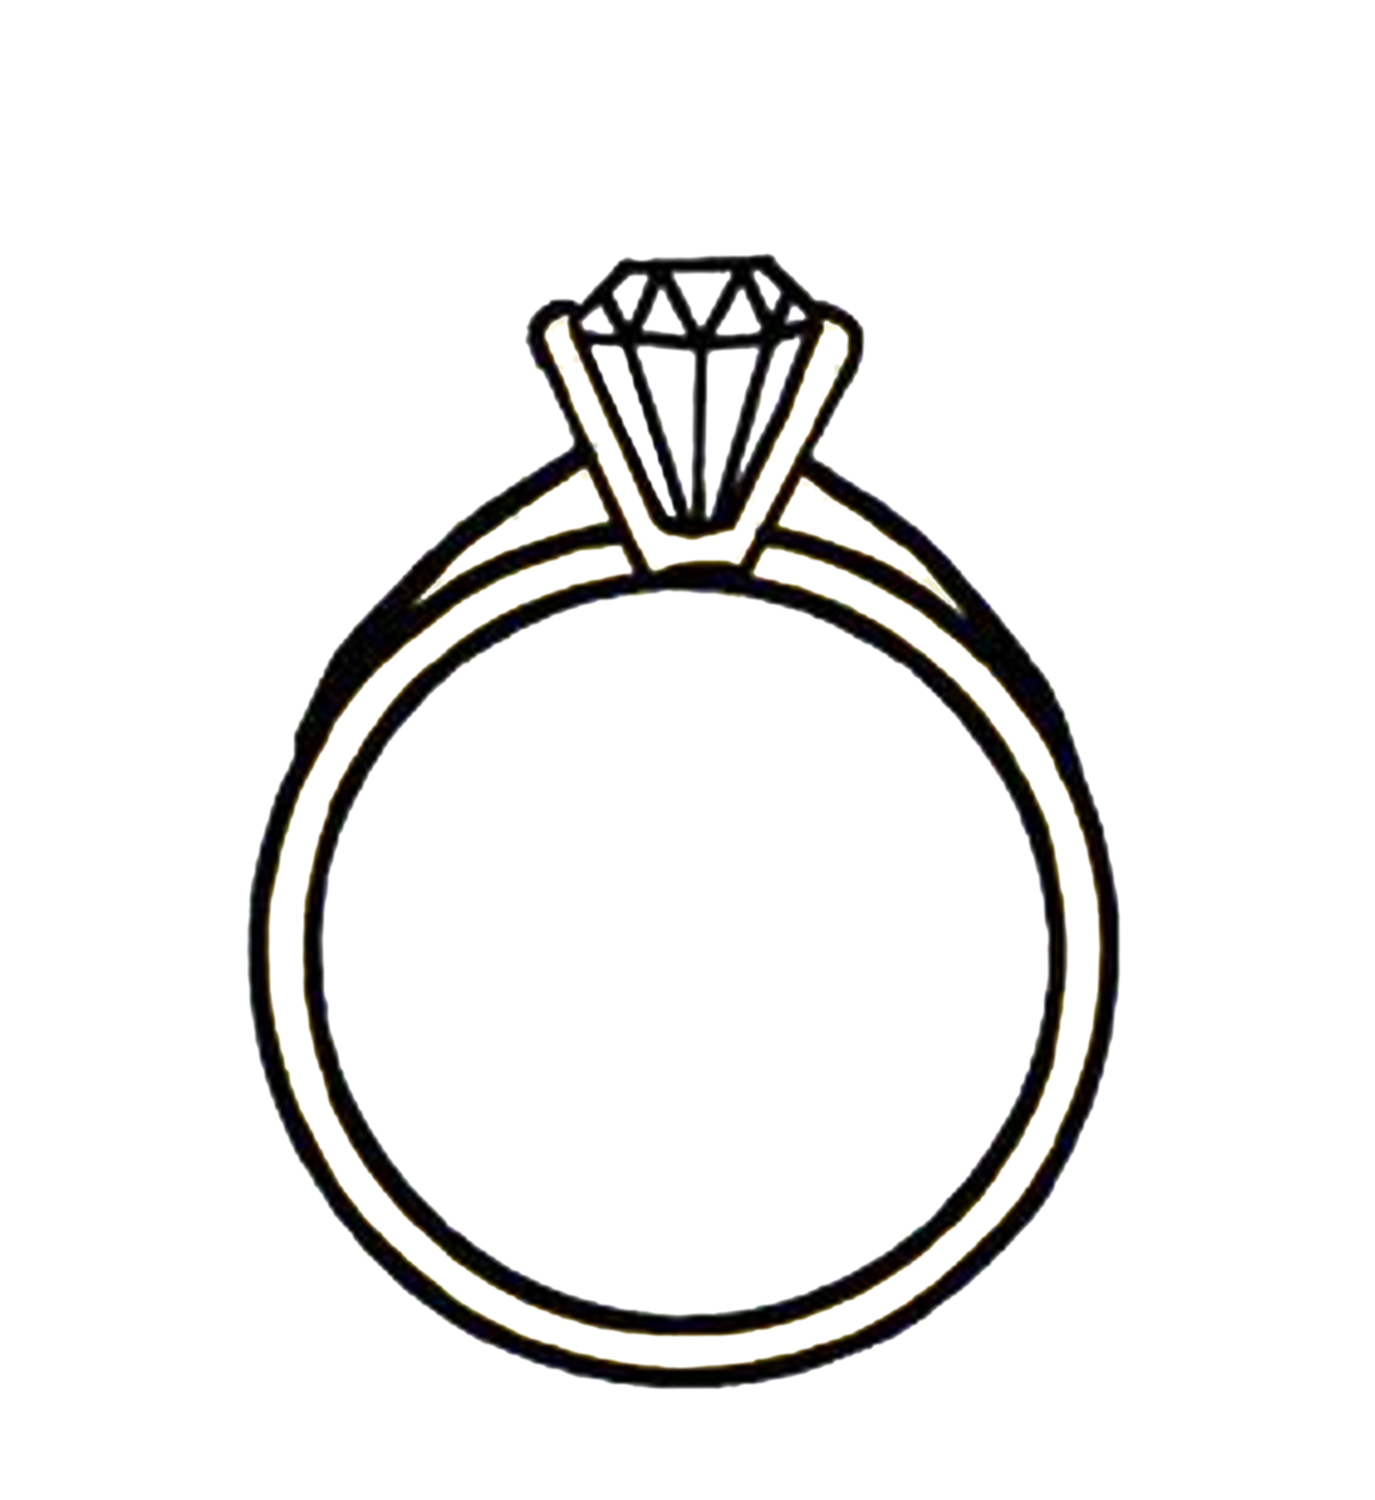 Diamond ring clip art